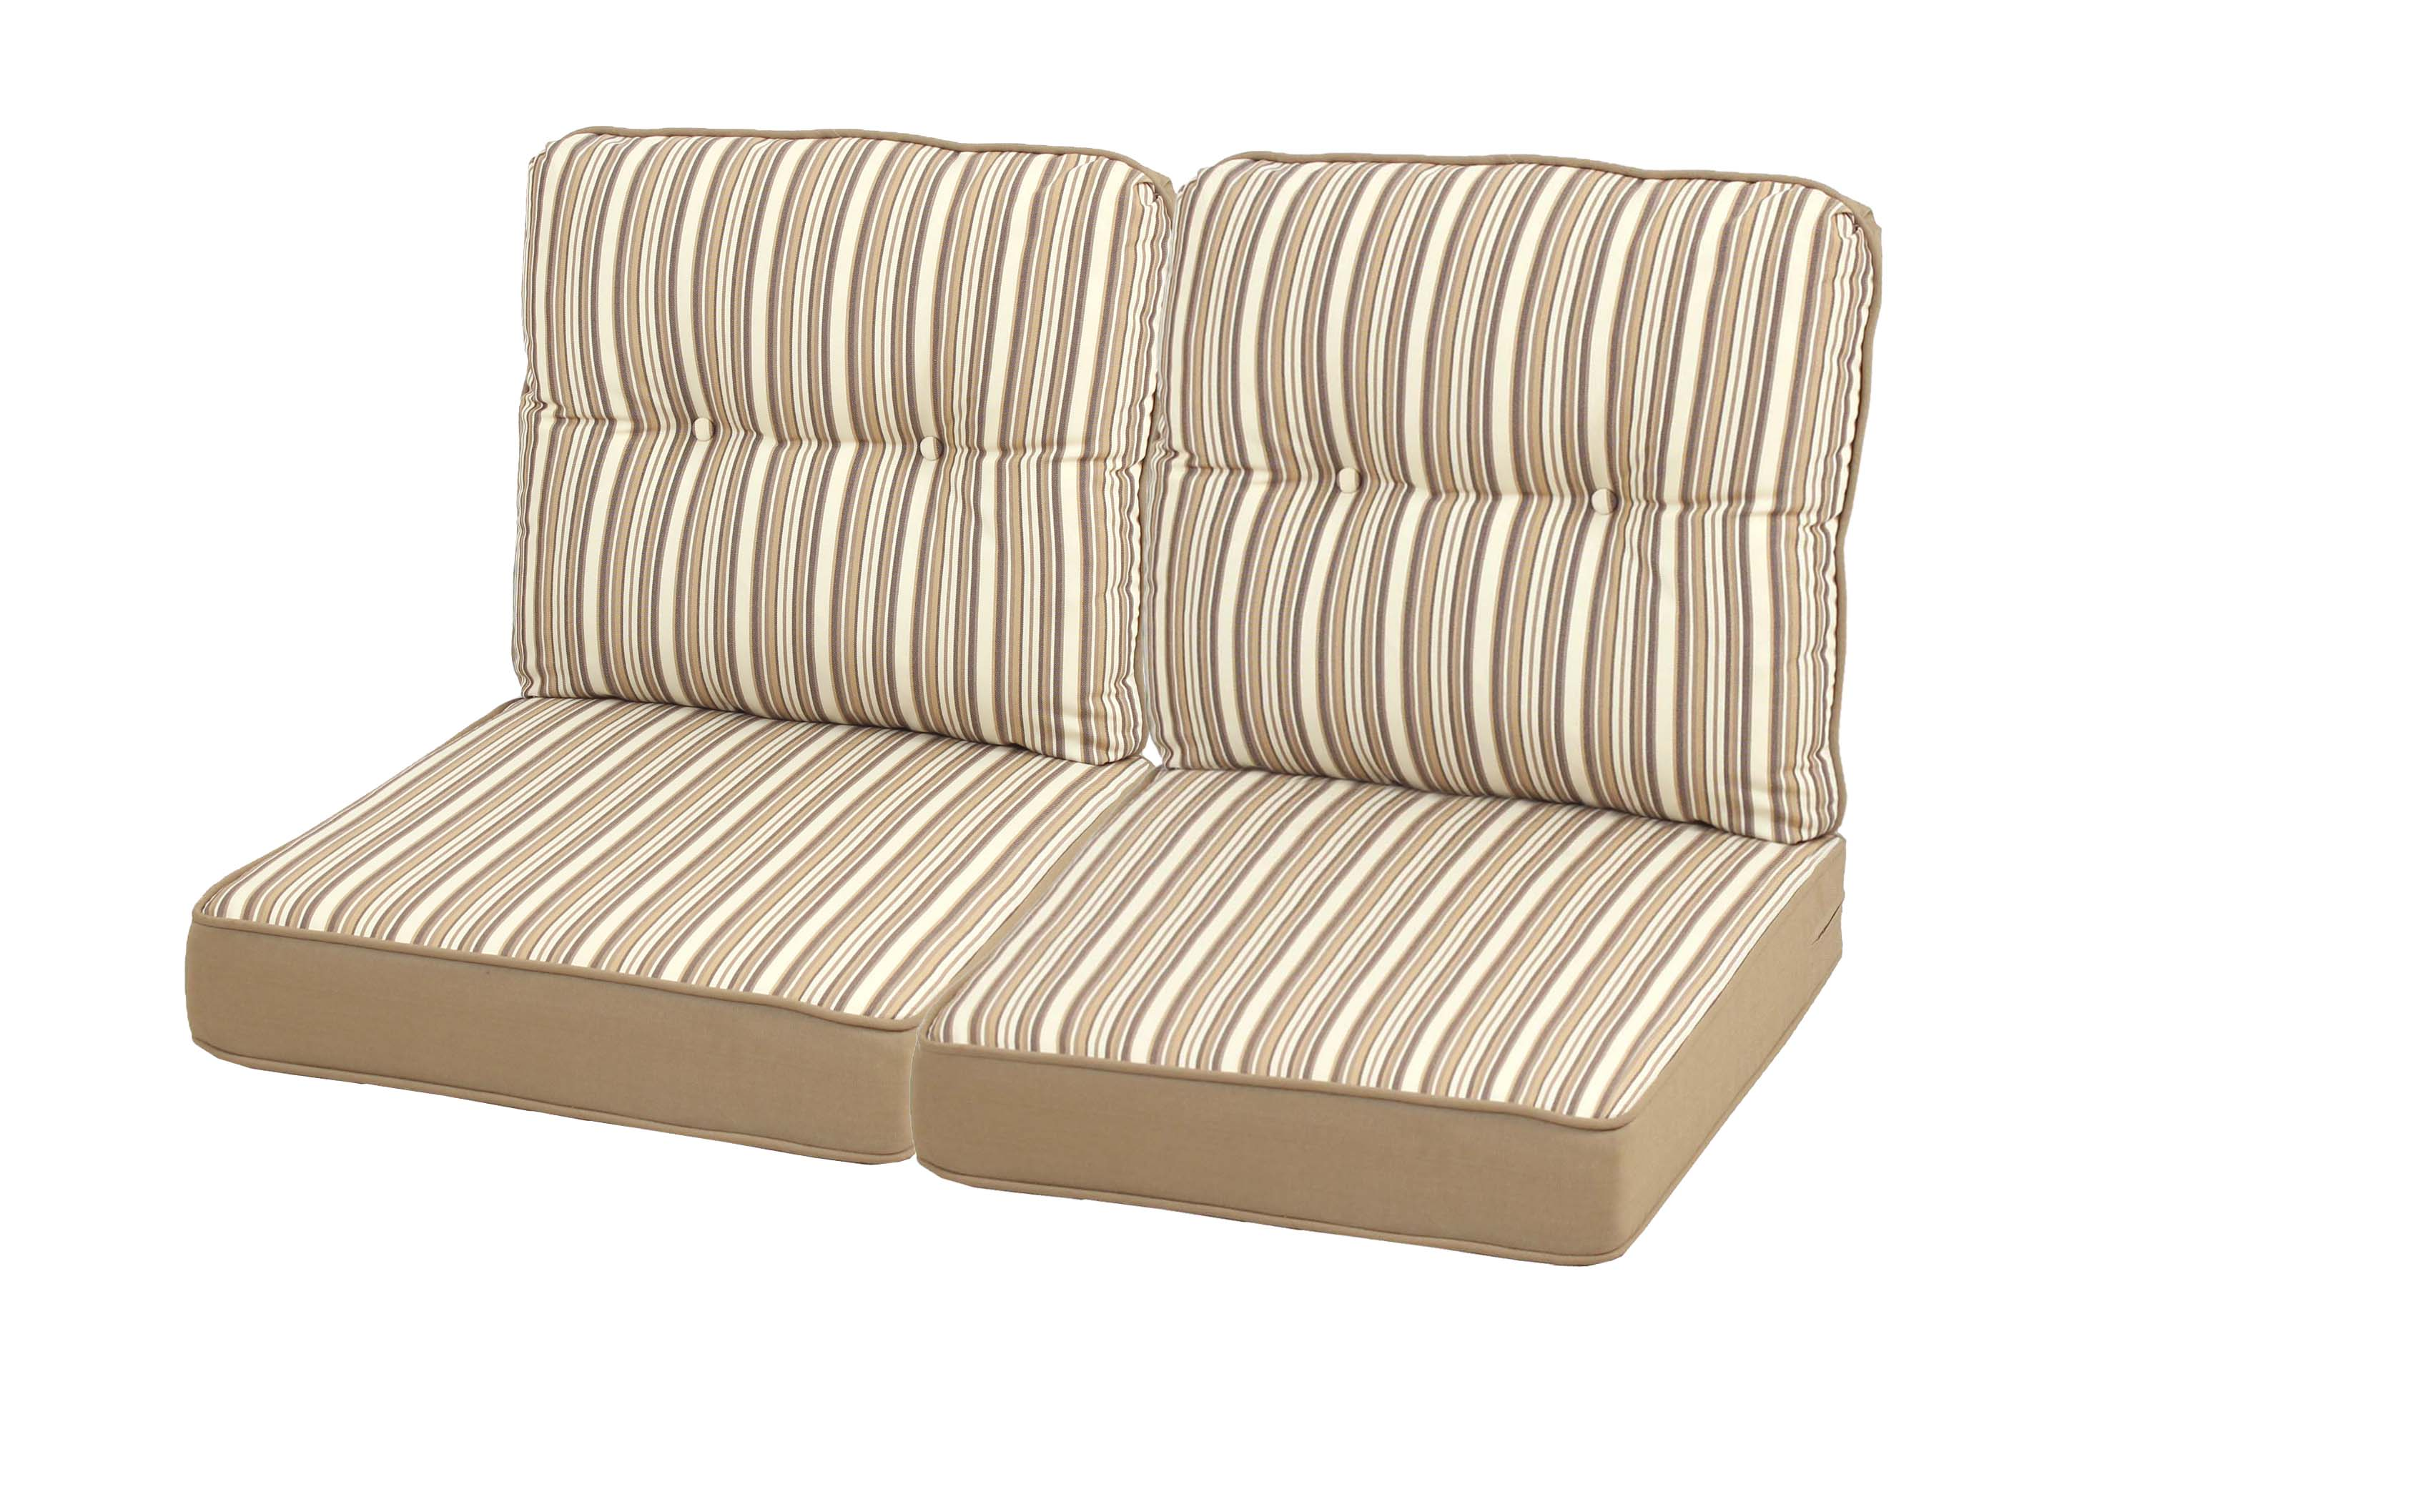 replacement cushions for outdoor furniture mayfield replacement loveseat cushion set | shop your way: online OSCKIWM